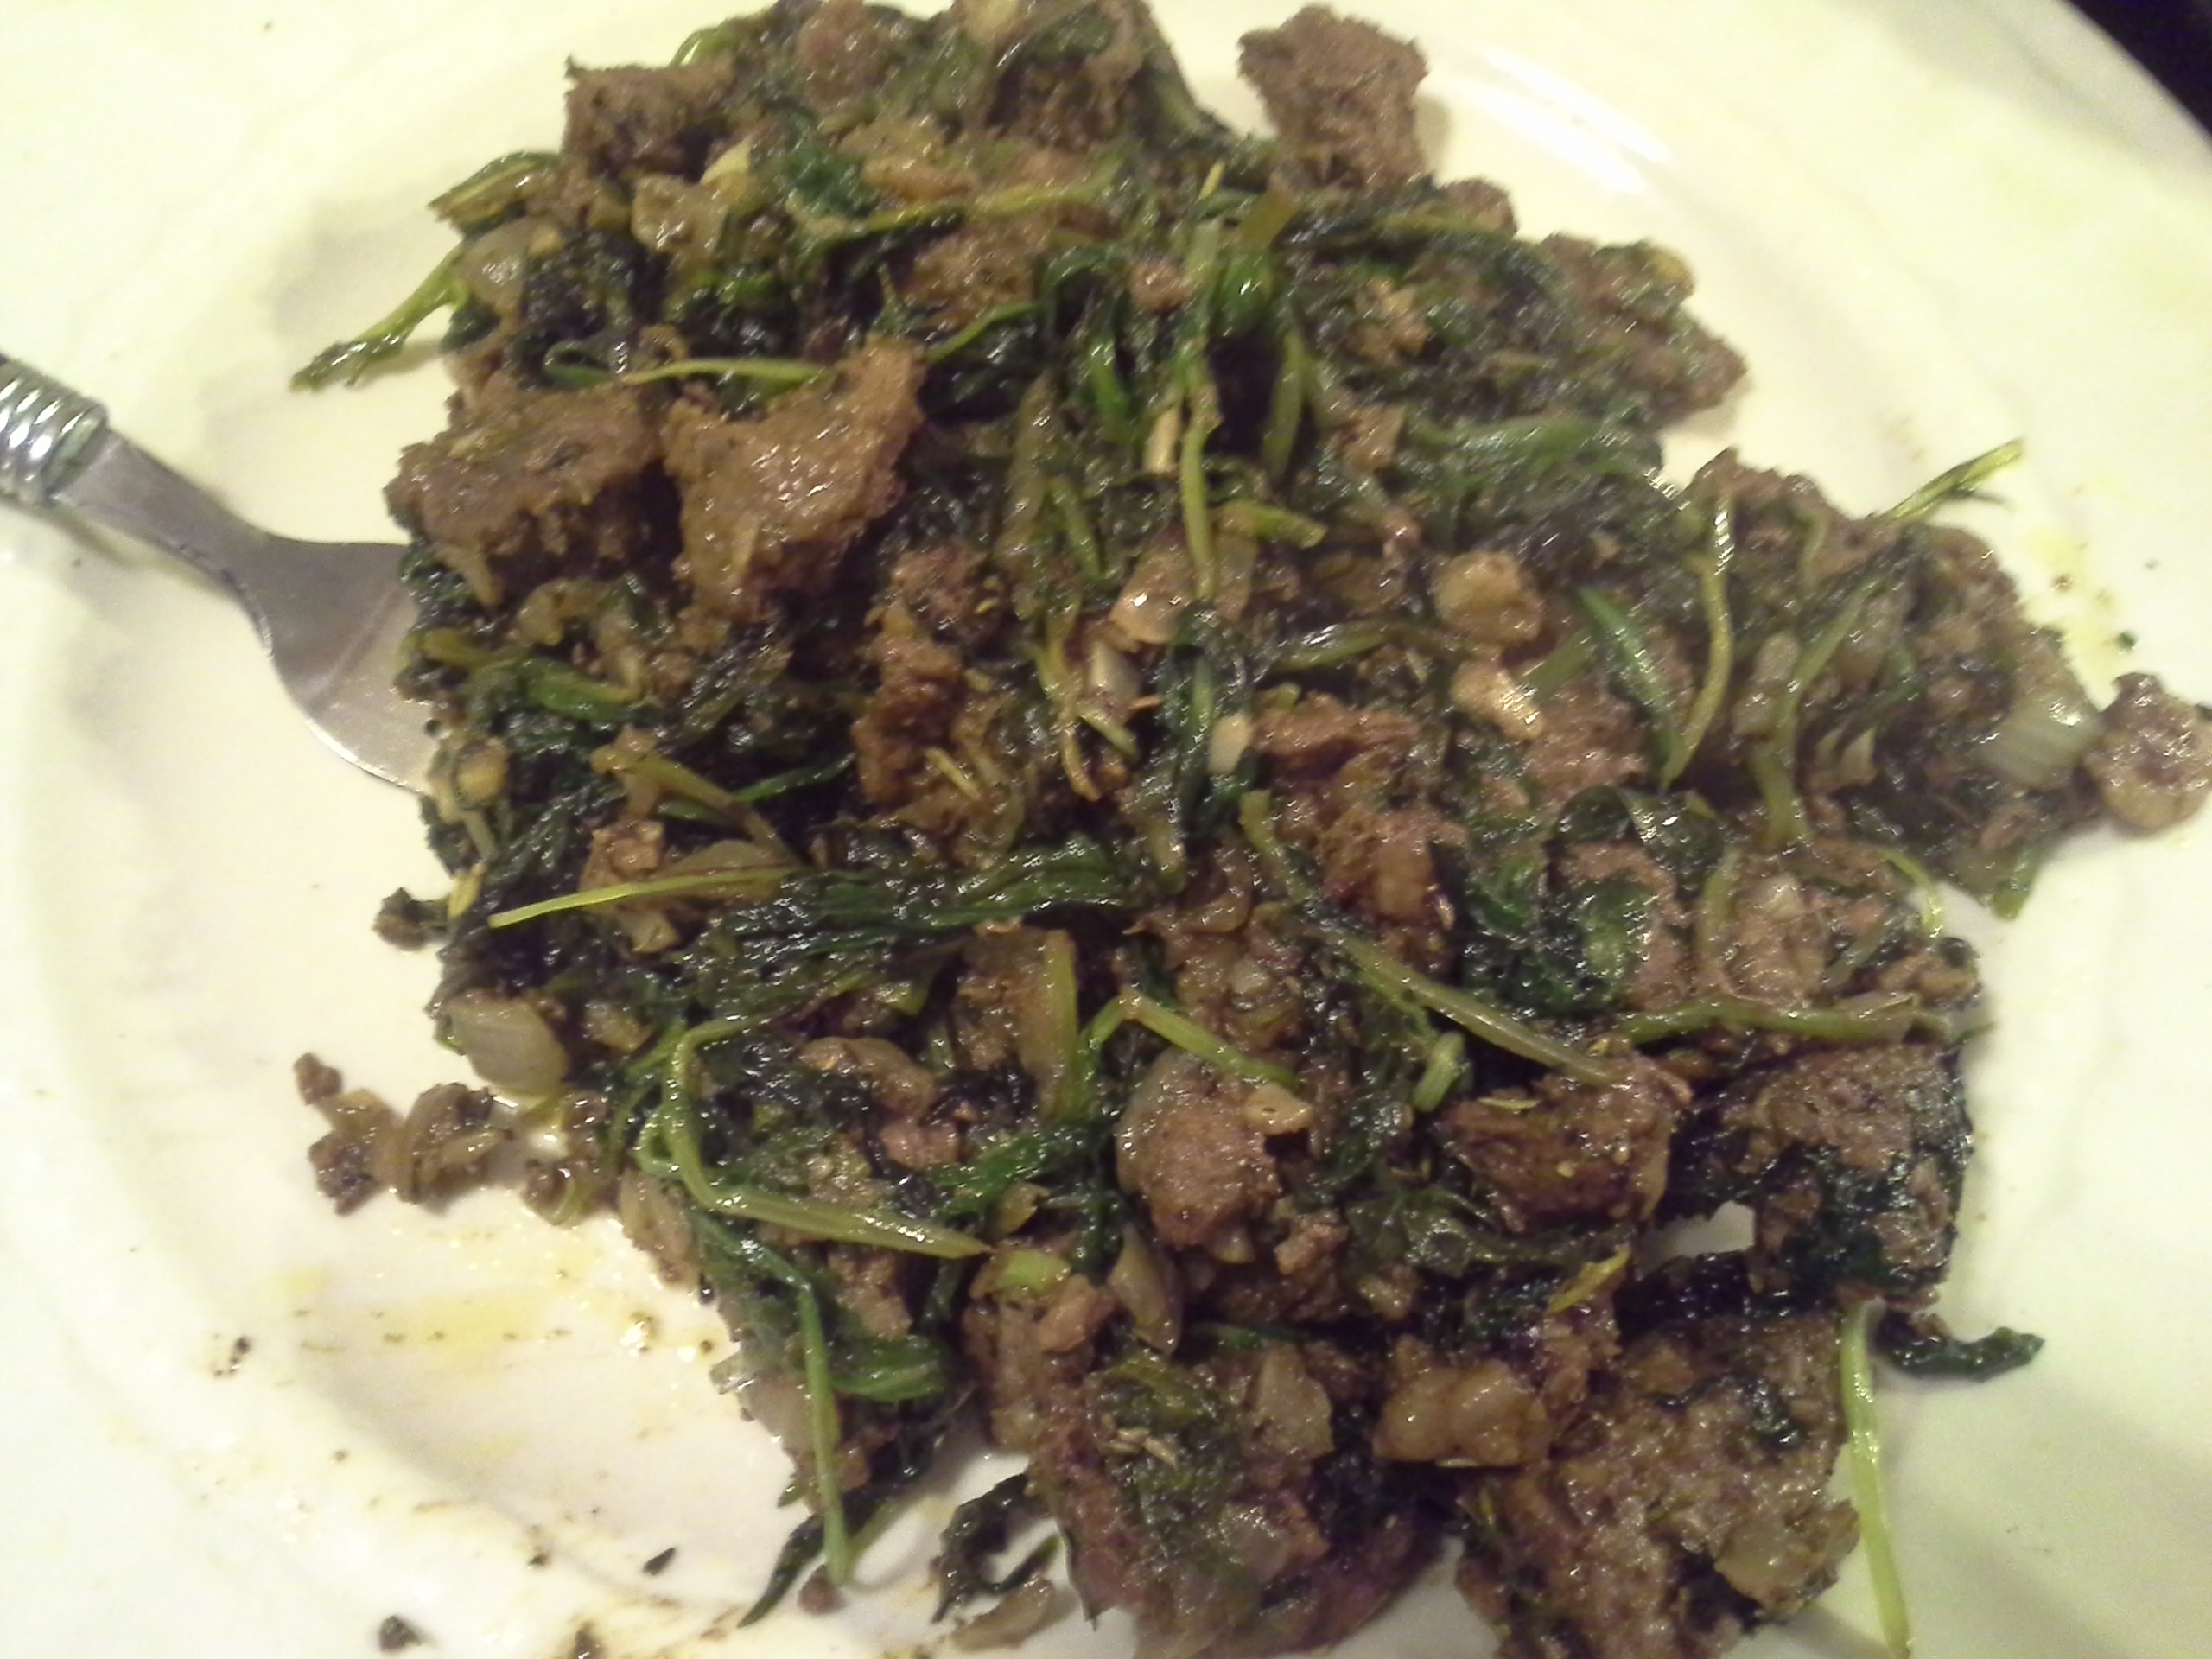 Dinner: 10:40 p.m. | 12.5 oz. steak, greens mix, 1/2 sweet onion, 4 cloves garlic, 2 Tbsp. coconut oil, herbs & spices